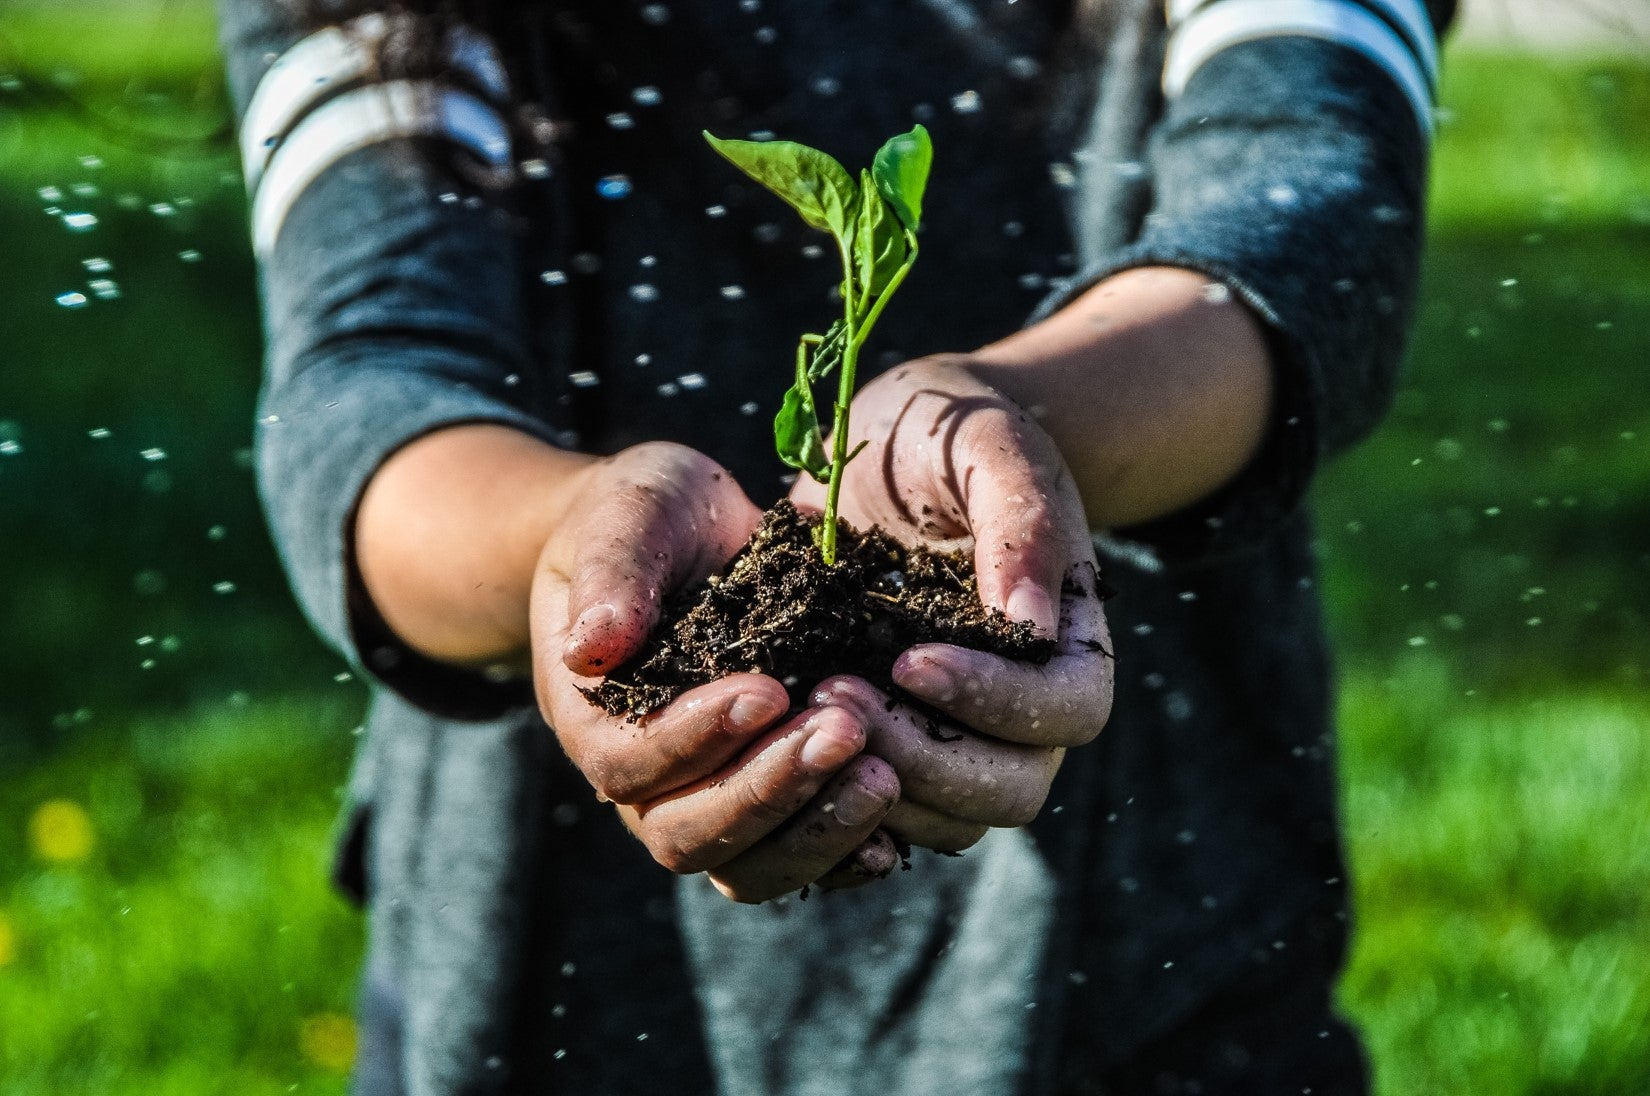 Two hands extended toward the camera holding soil with a green sprout emerging.